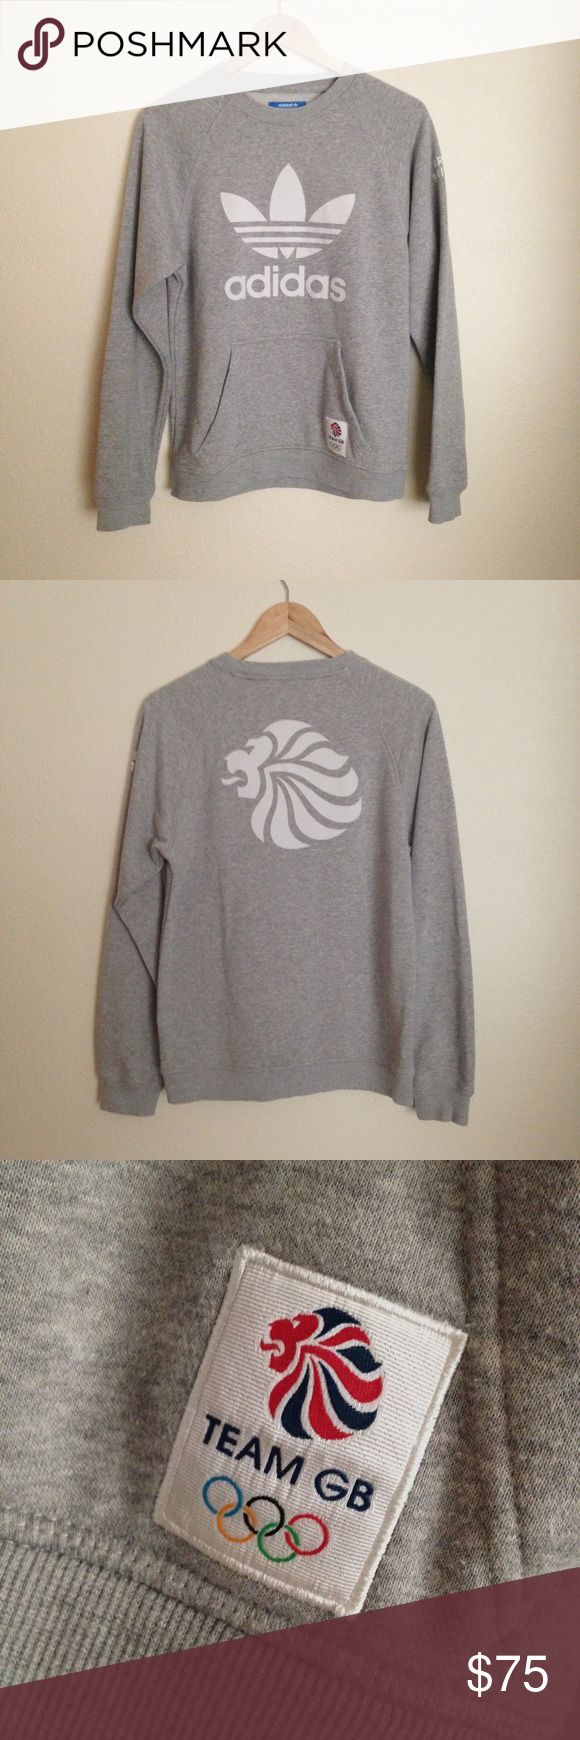 Adidas originals team GB sweatshirt Rare Olympic edition adidas originals crew neck sweatshirt! Team Great Britain. This is a men's size X-small which would also fit a women's small. adidas Shirts Sweatshirts & Hoodies